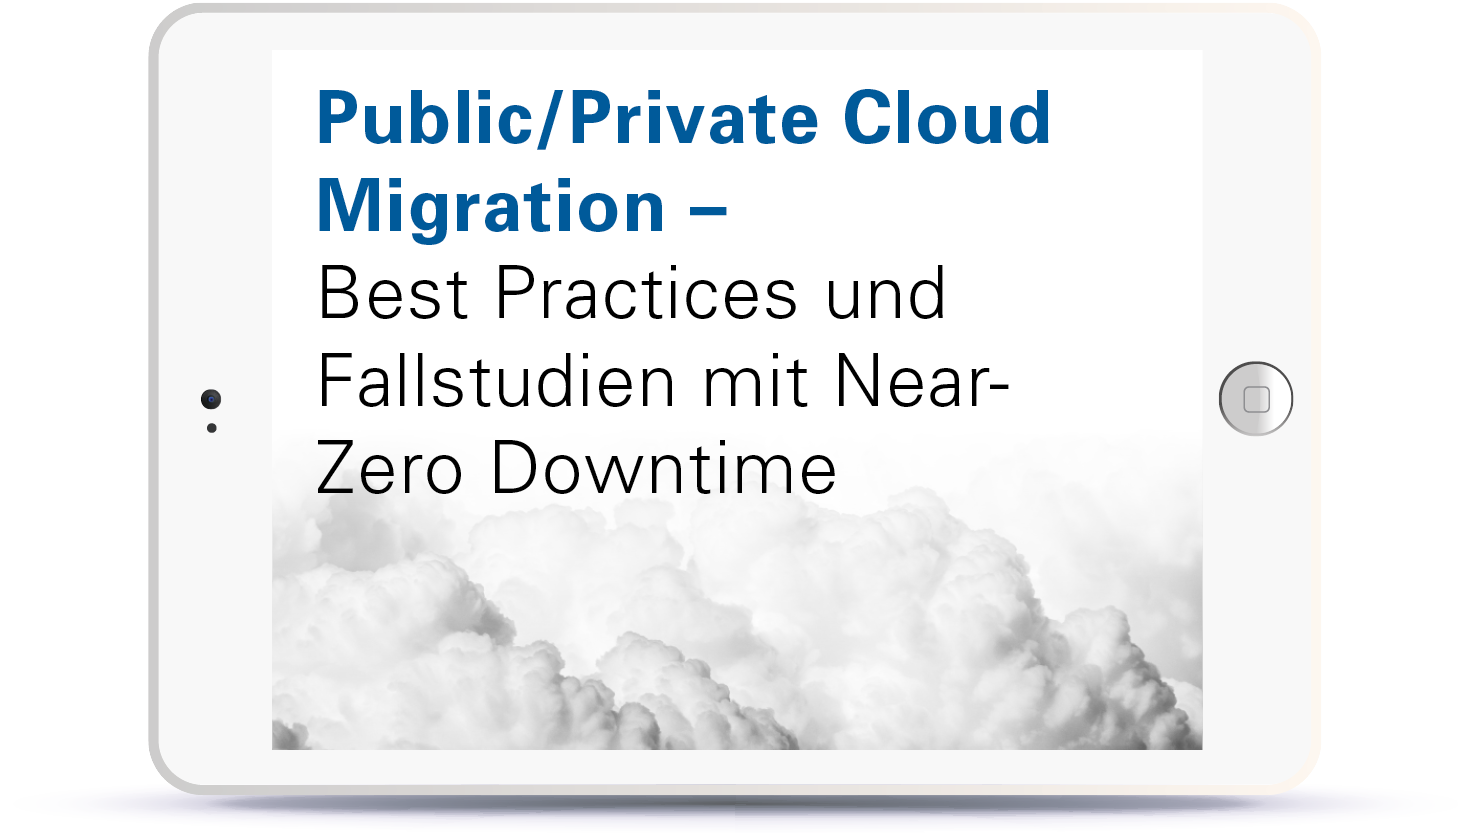 WEBINAR: Public/Private Cloud Migration - Best Practices und Fallstudien mit Near-Zero Downtime. Book